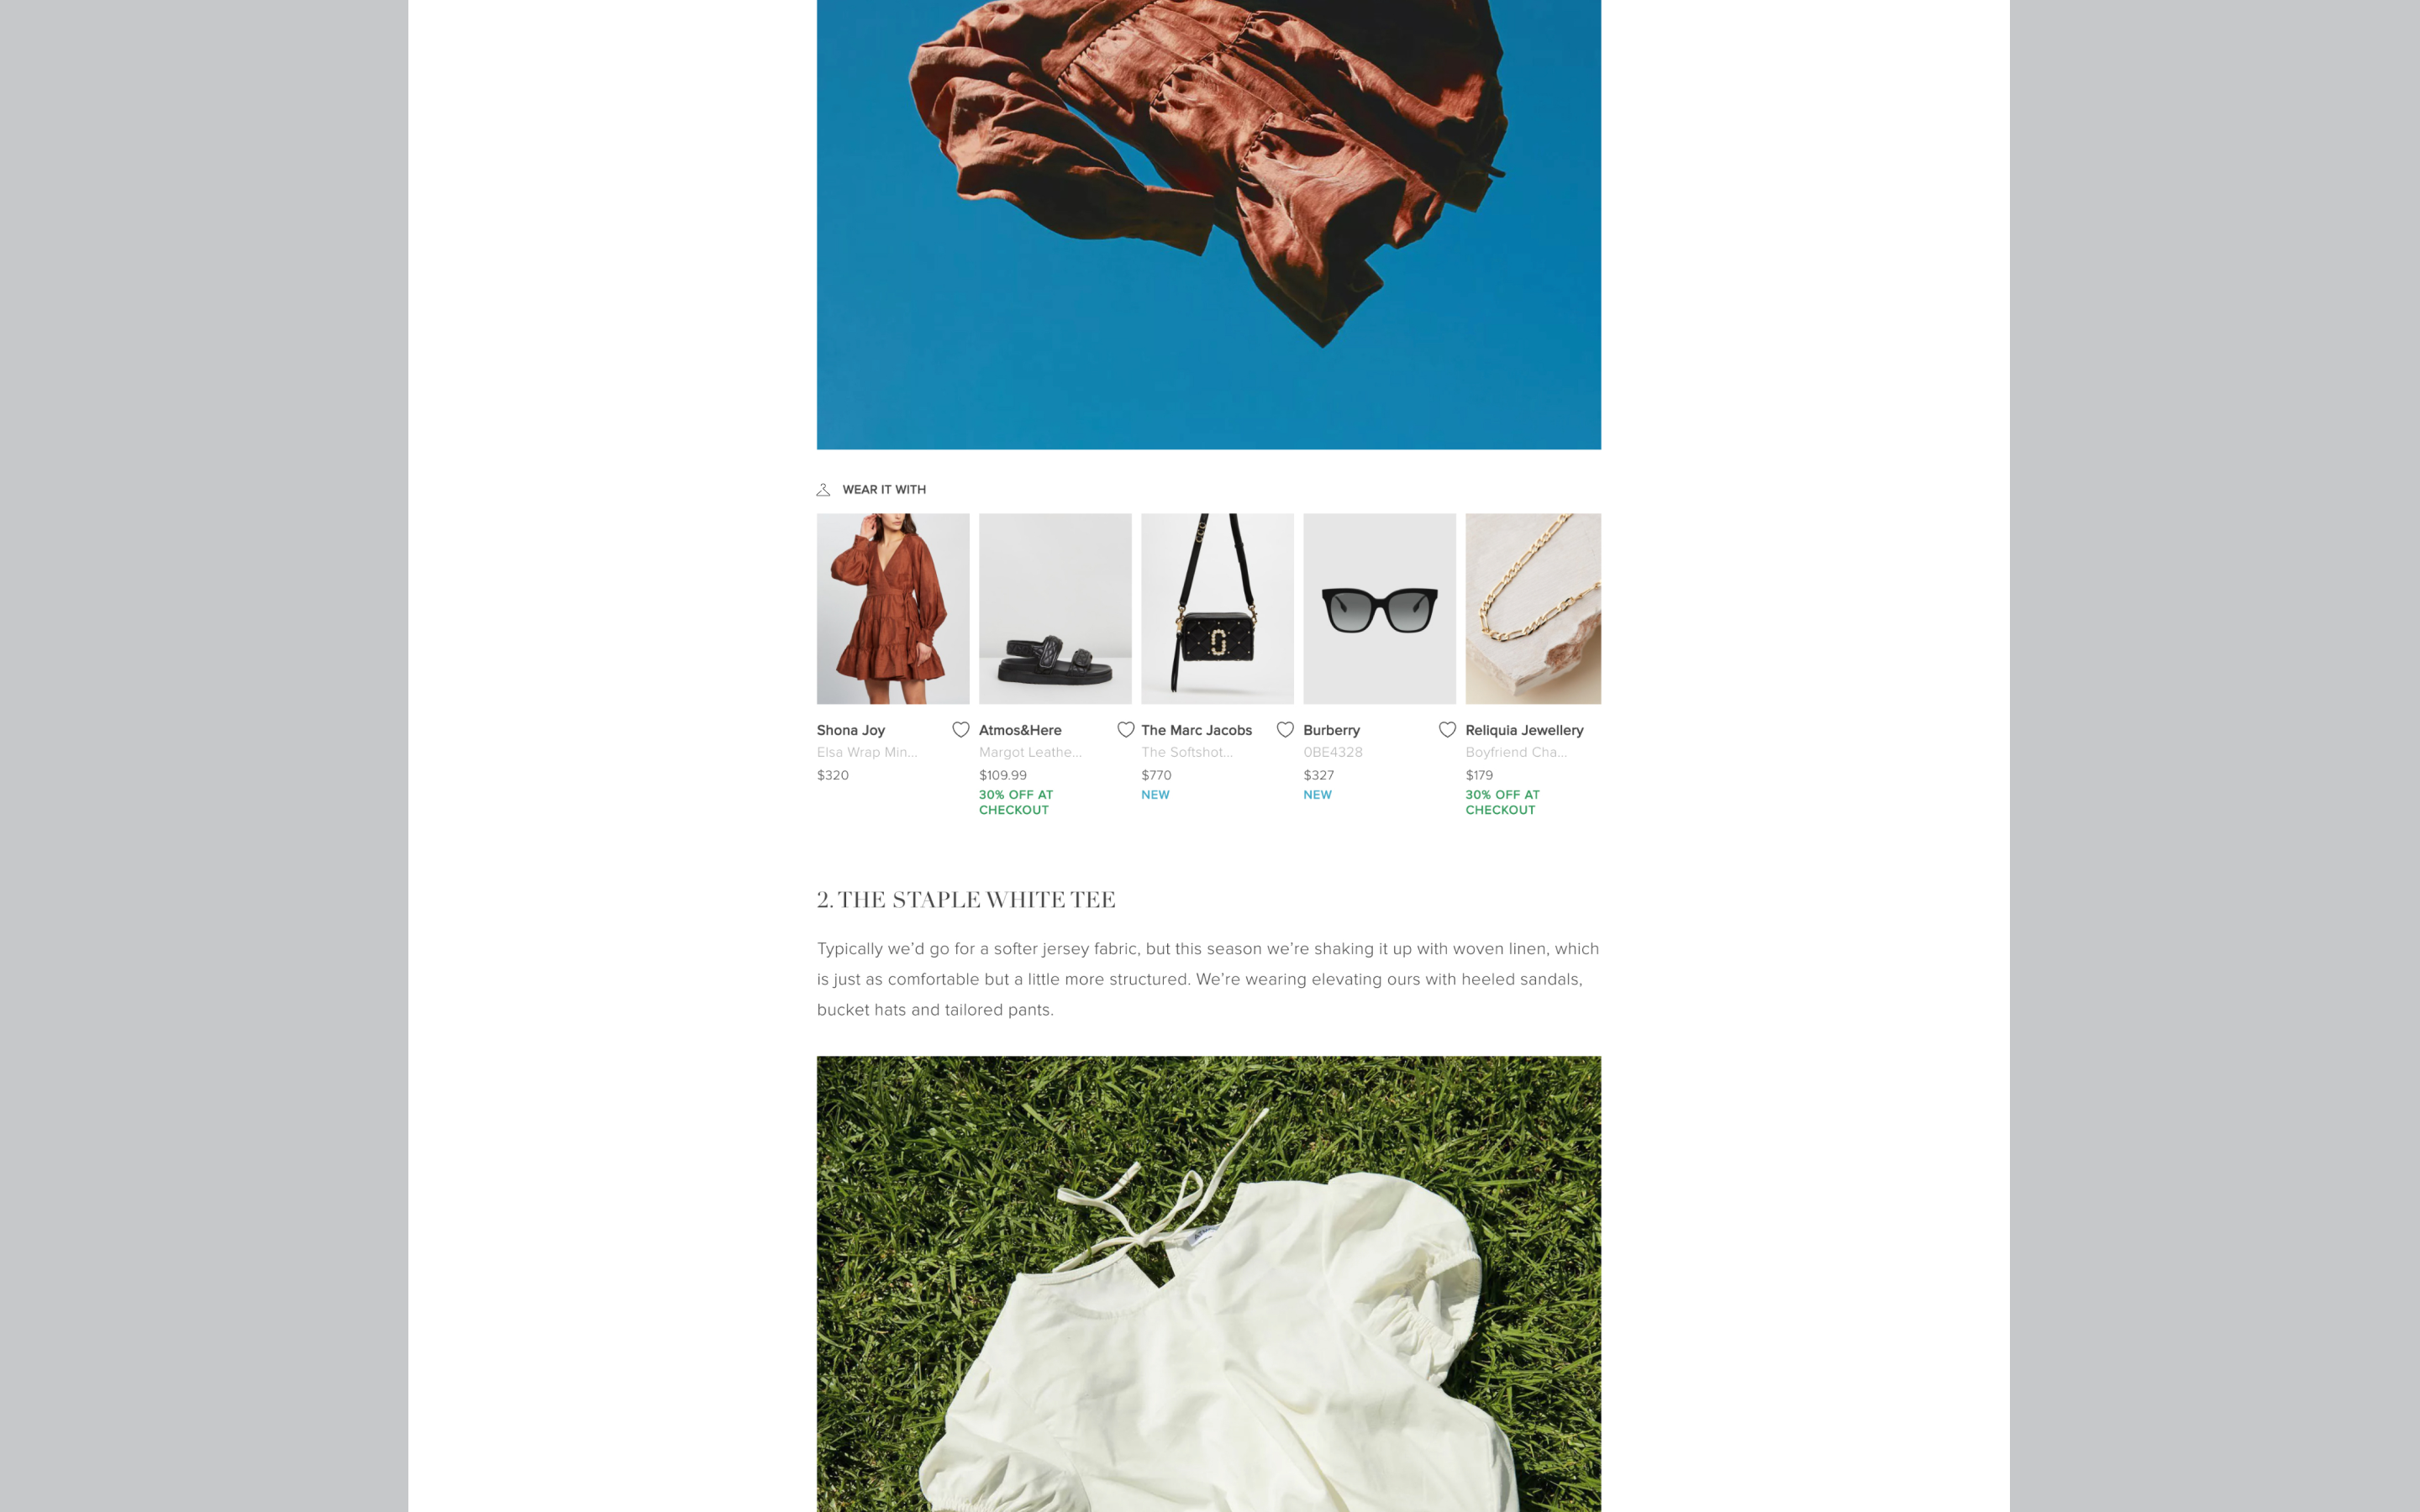 Edition by THE ICONIC article featuring 'shop the look' allowing users to directly purchase fashion items showcased in article imagery